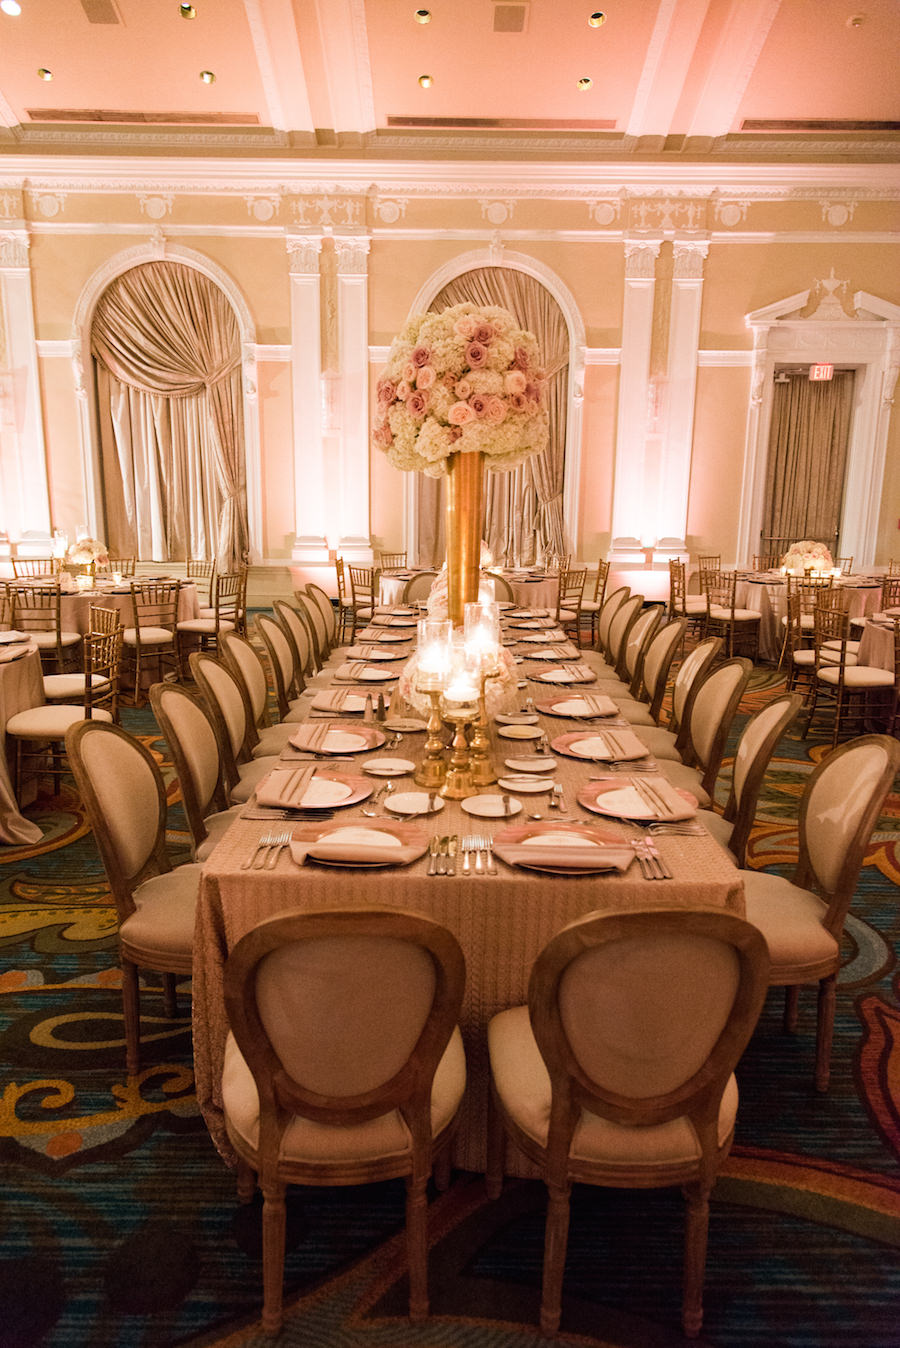 Ballroom Wedding Reception Decor with Blush and Ivory Floral Centerpieces in a Tall, Golden Vase   St. Petersburg Wedding Venue The Renaissance Vinoy Hotel